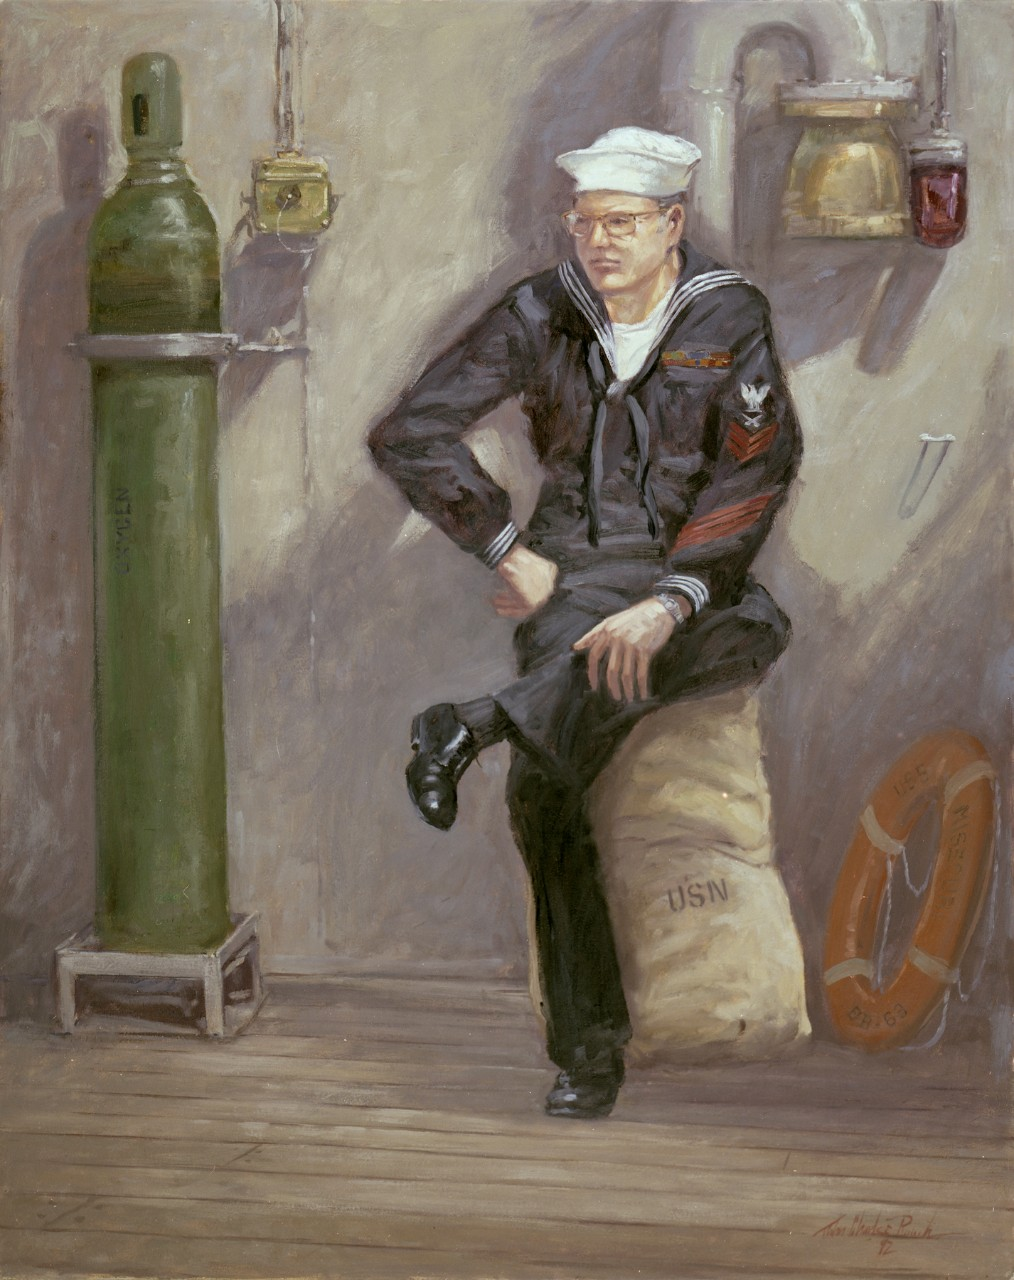 A sailor is seated on a full canvas bag he is leaning against the side of the ship